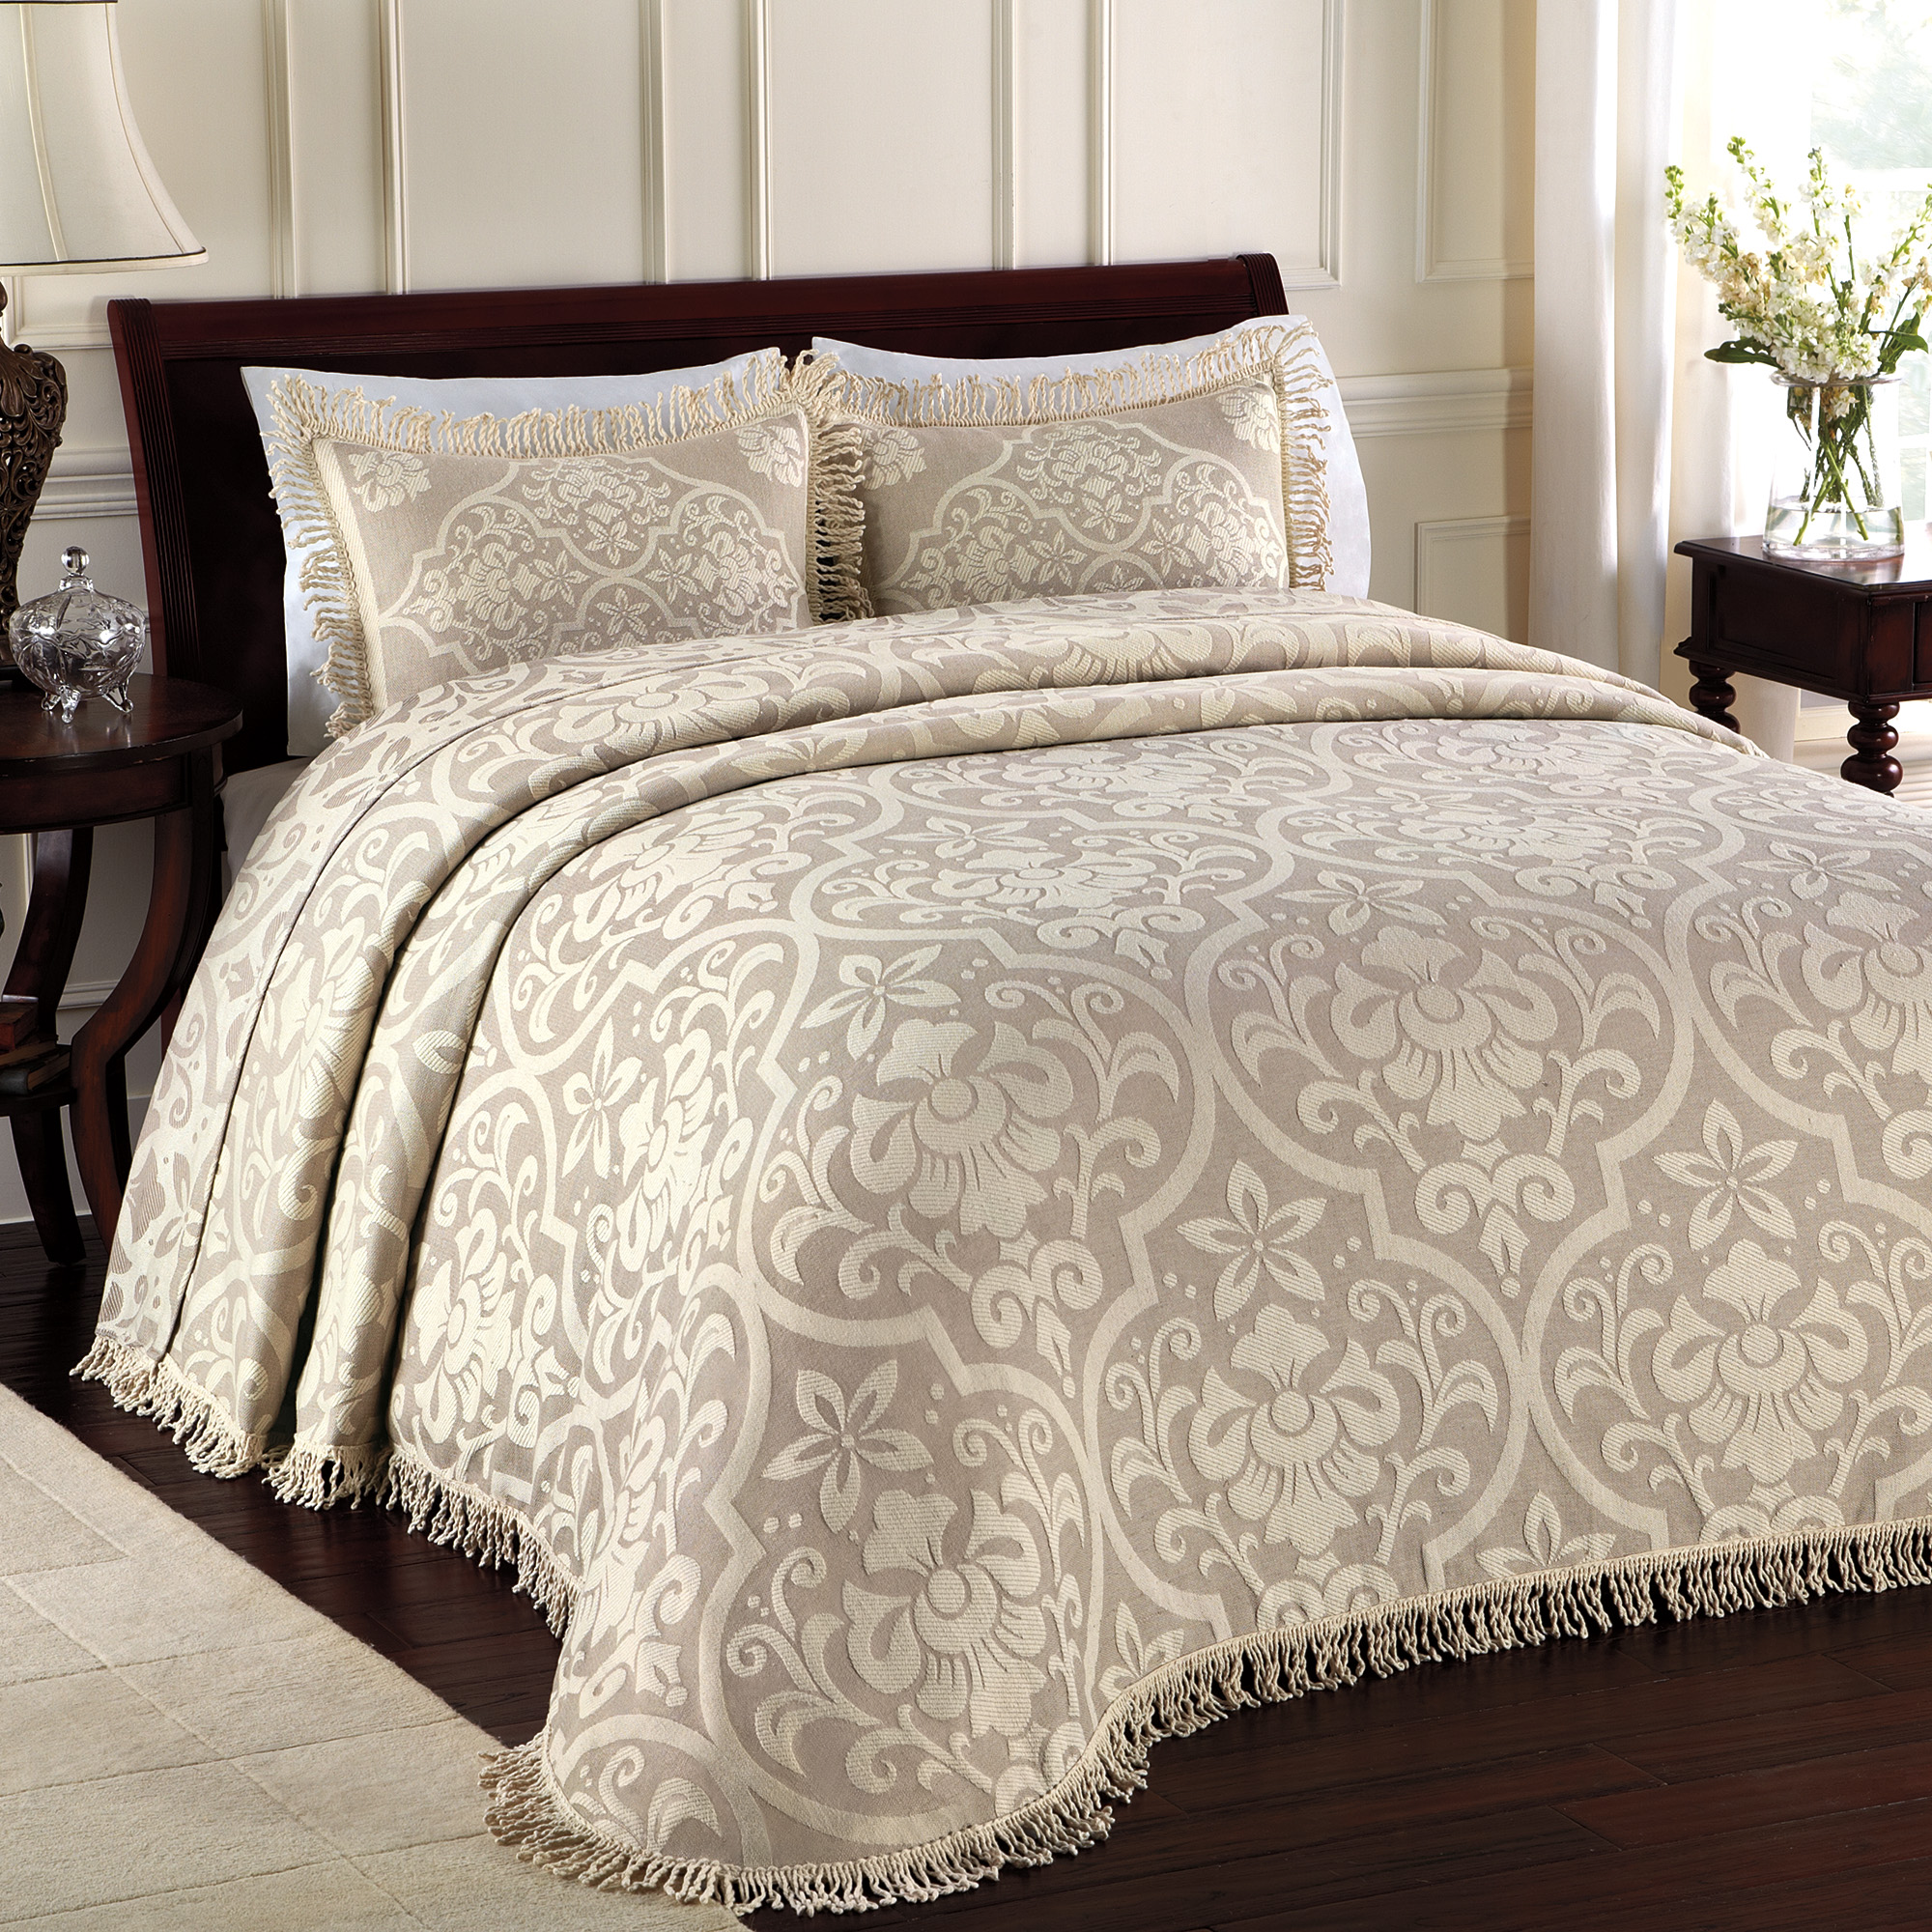 LaMont Home All Over Brocade Collection – 100% Cotton Woven Bedspread